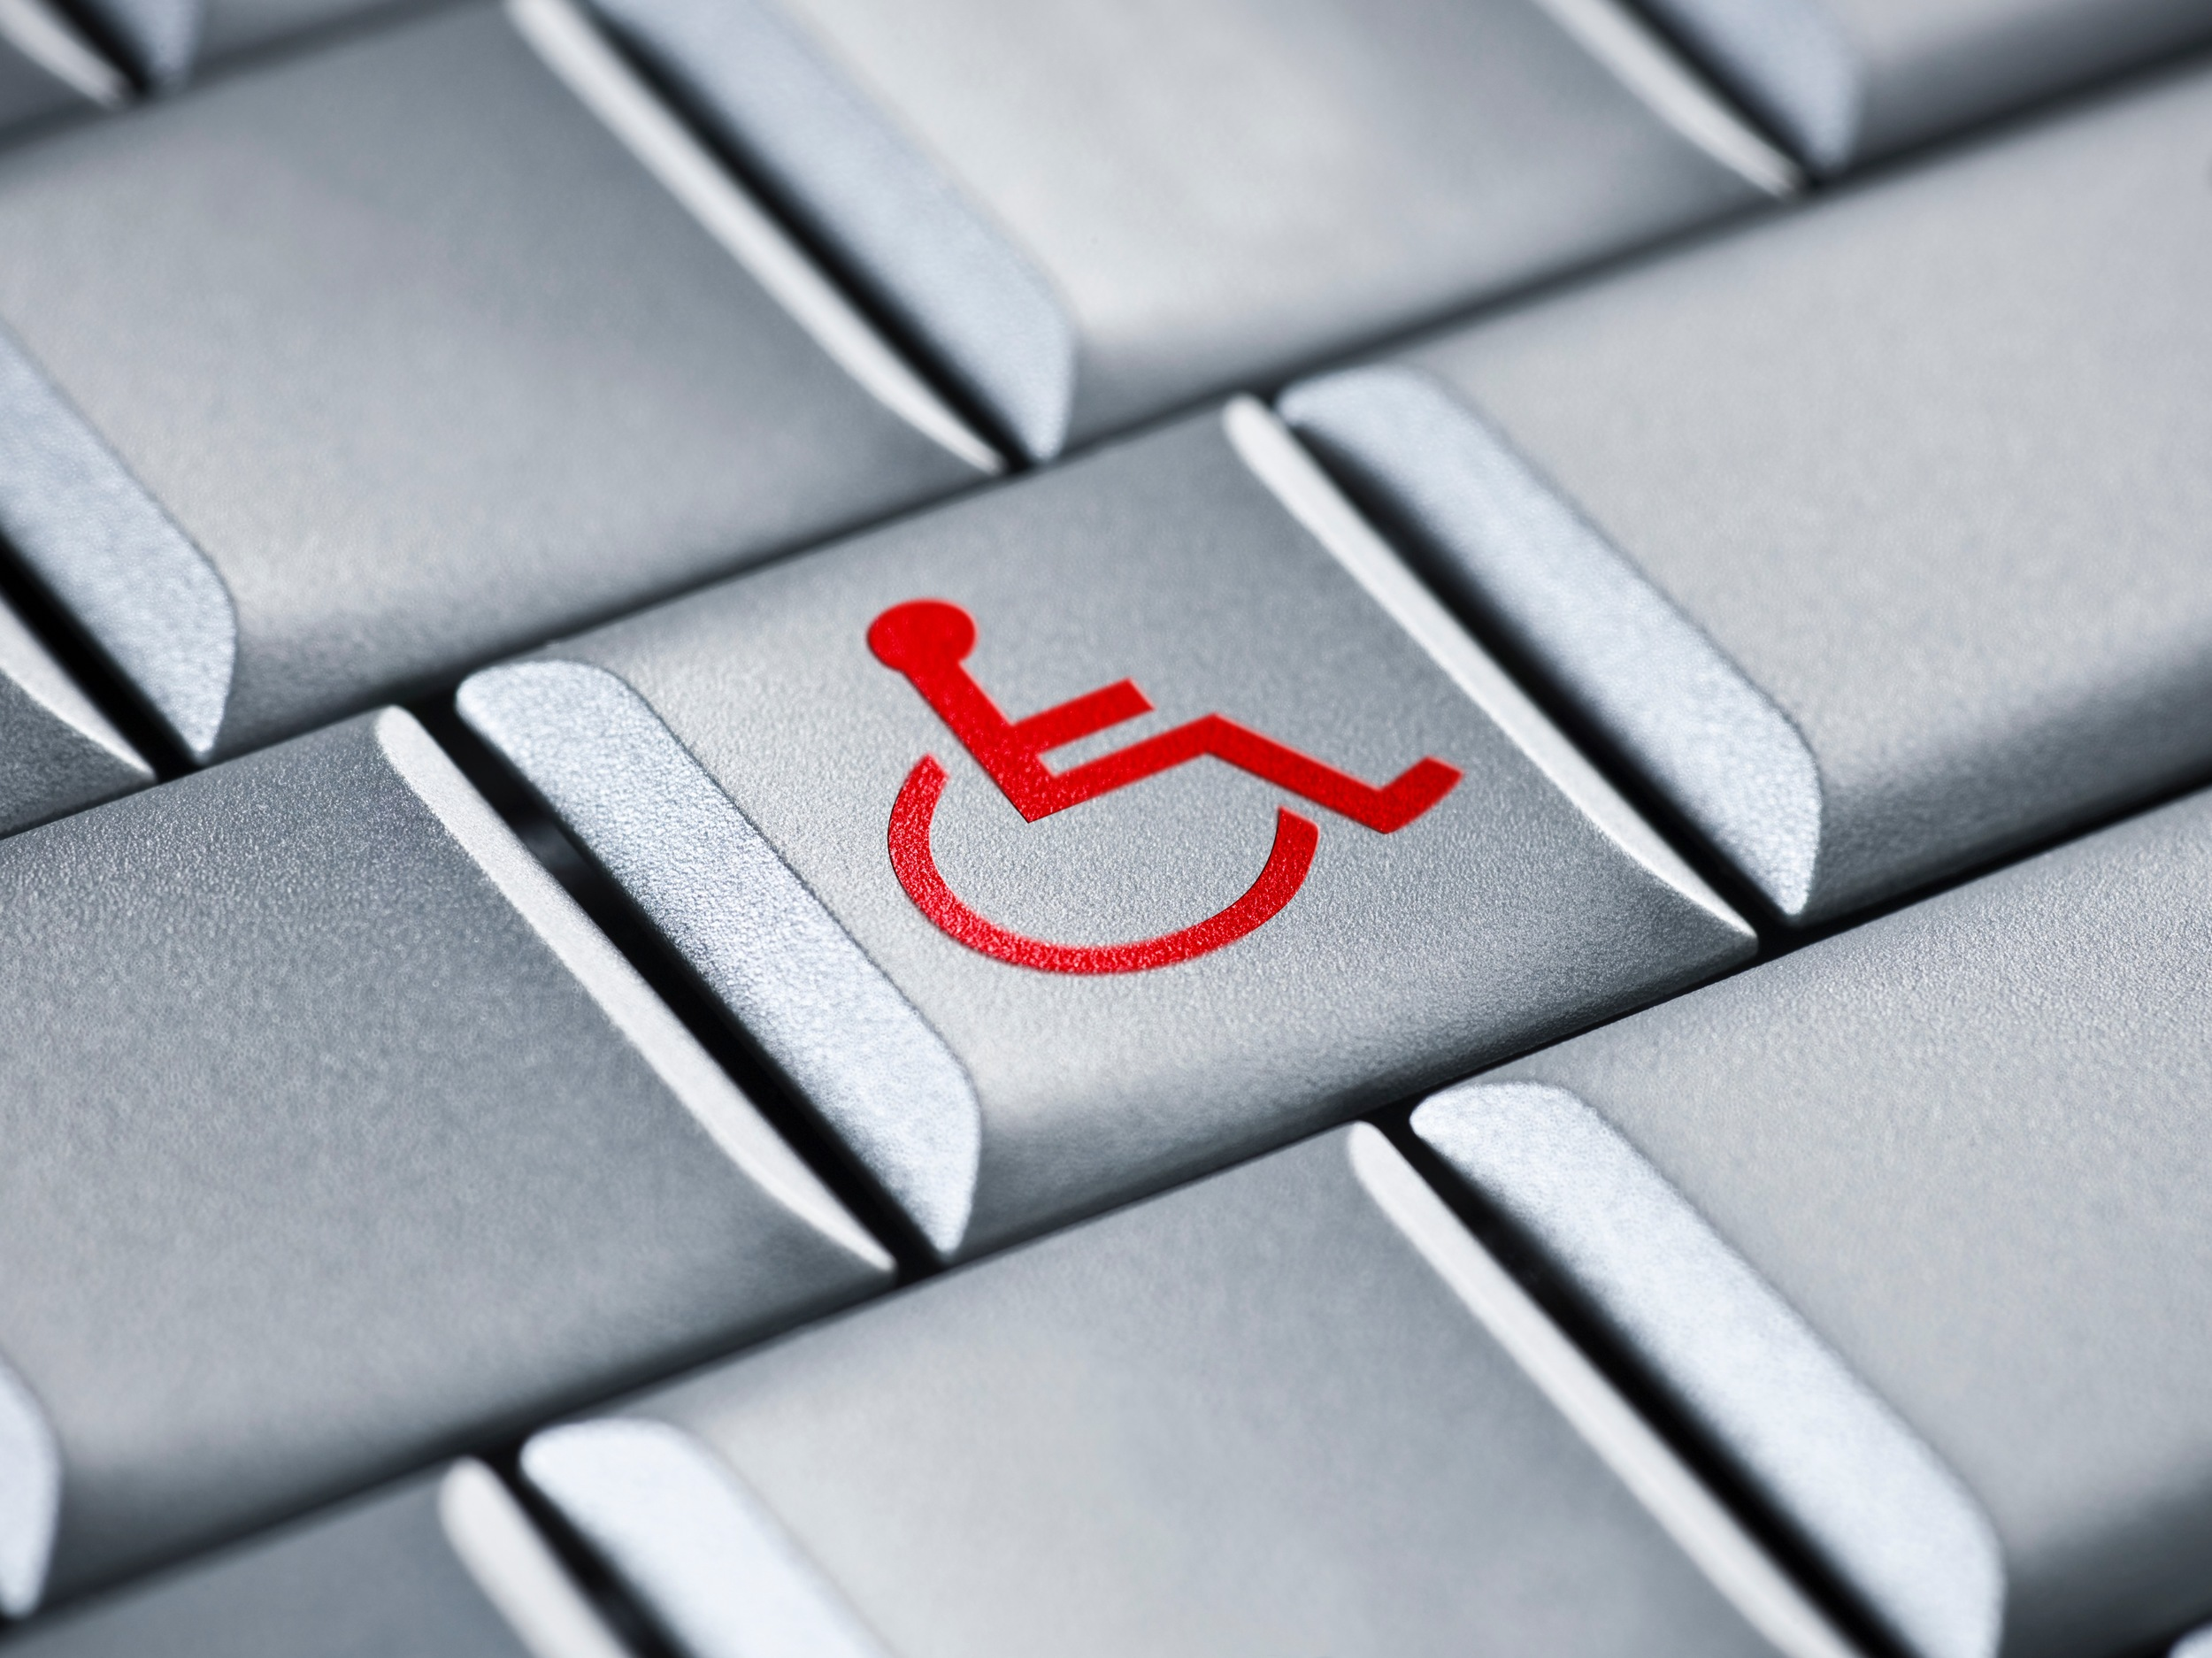 Closeup of a gray computer keyboard with a red wheelchair symbol on the center key